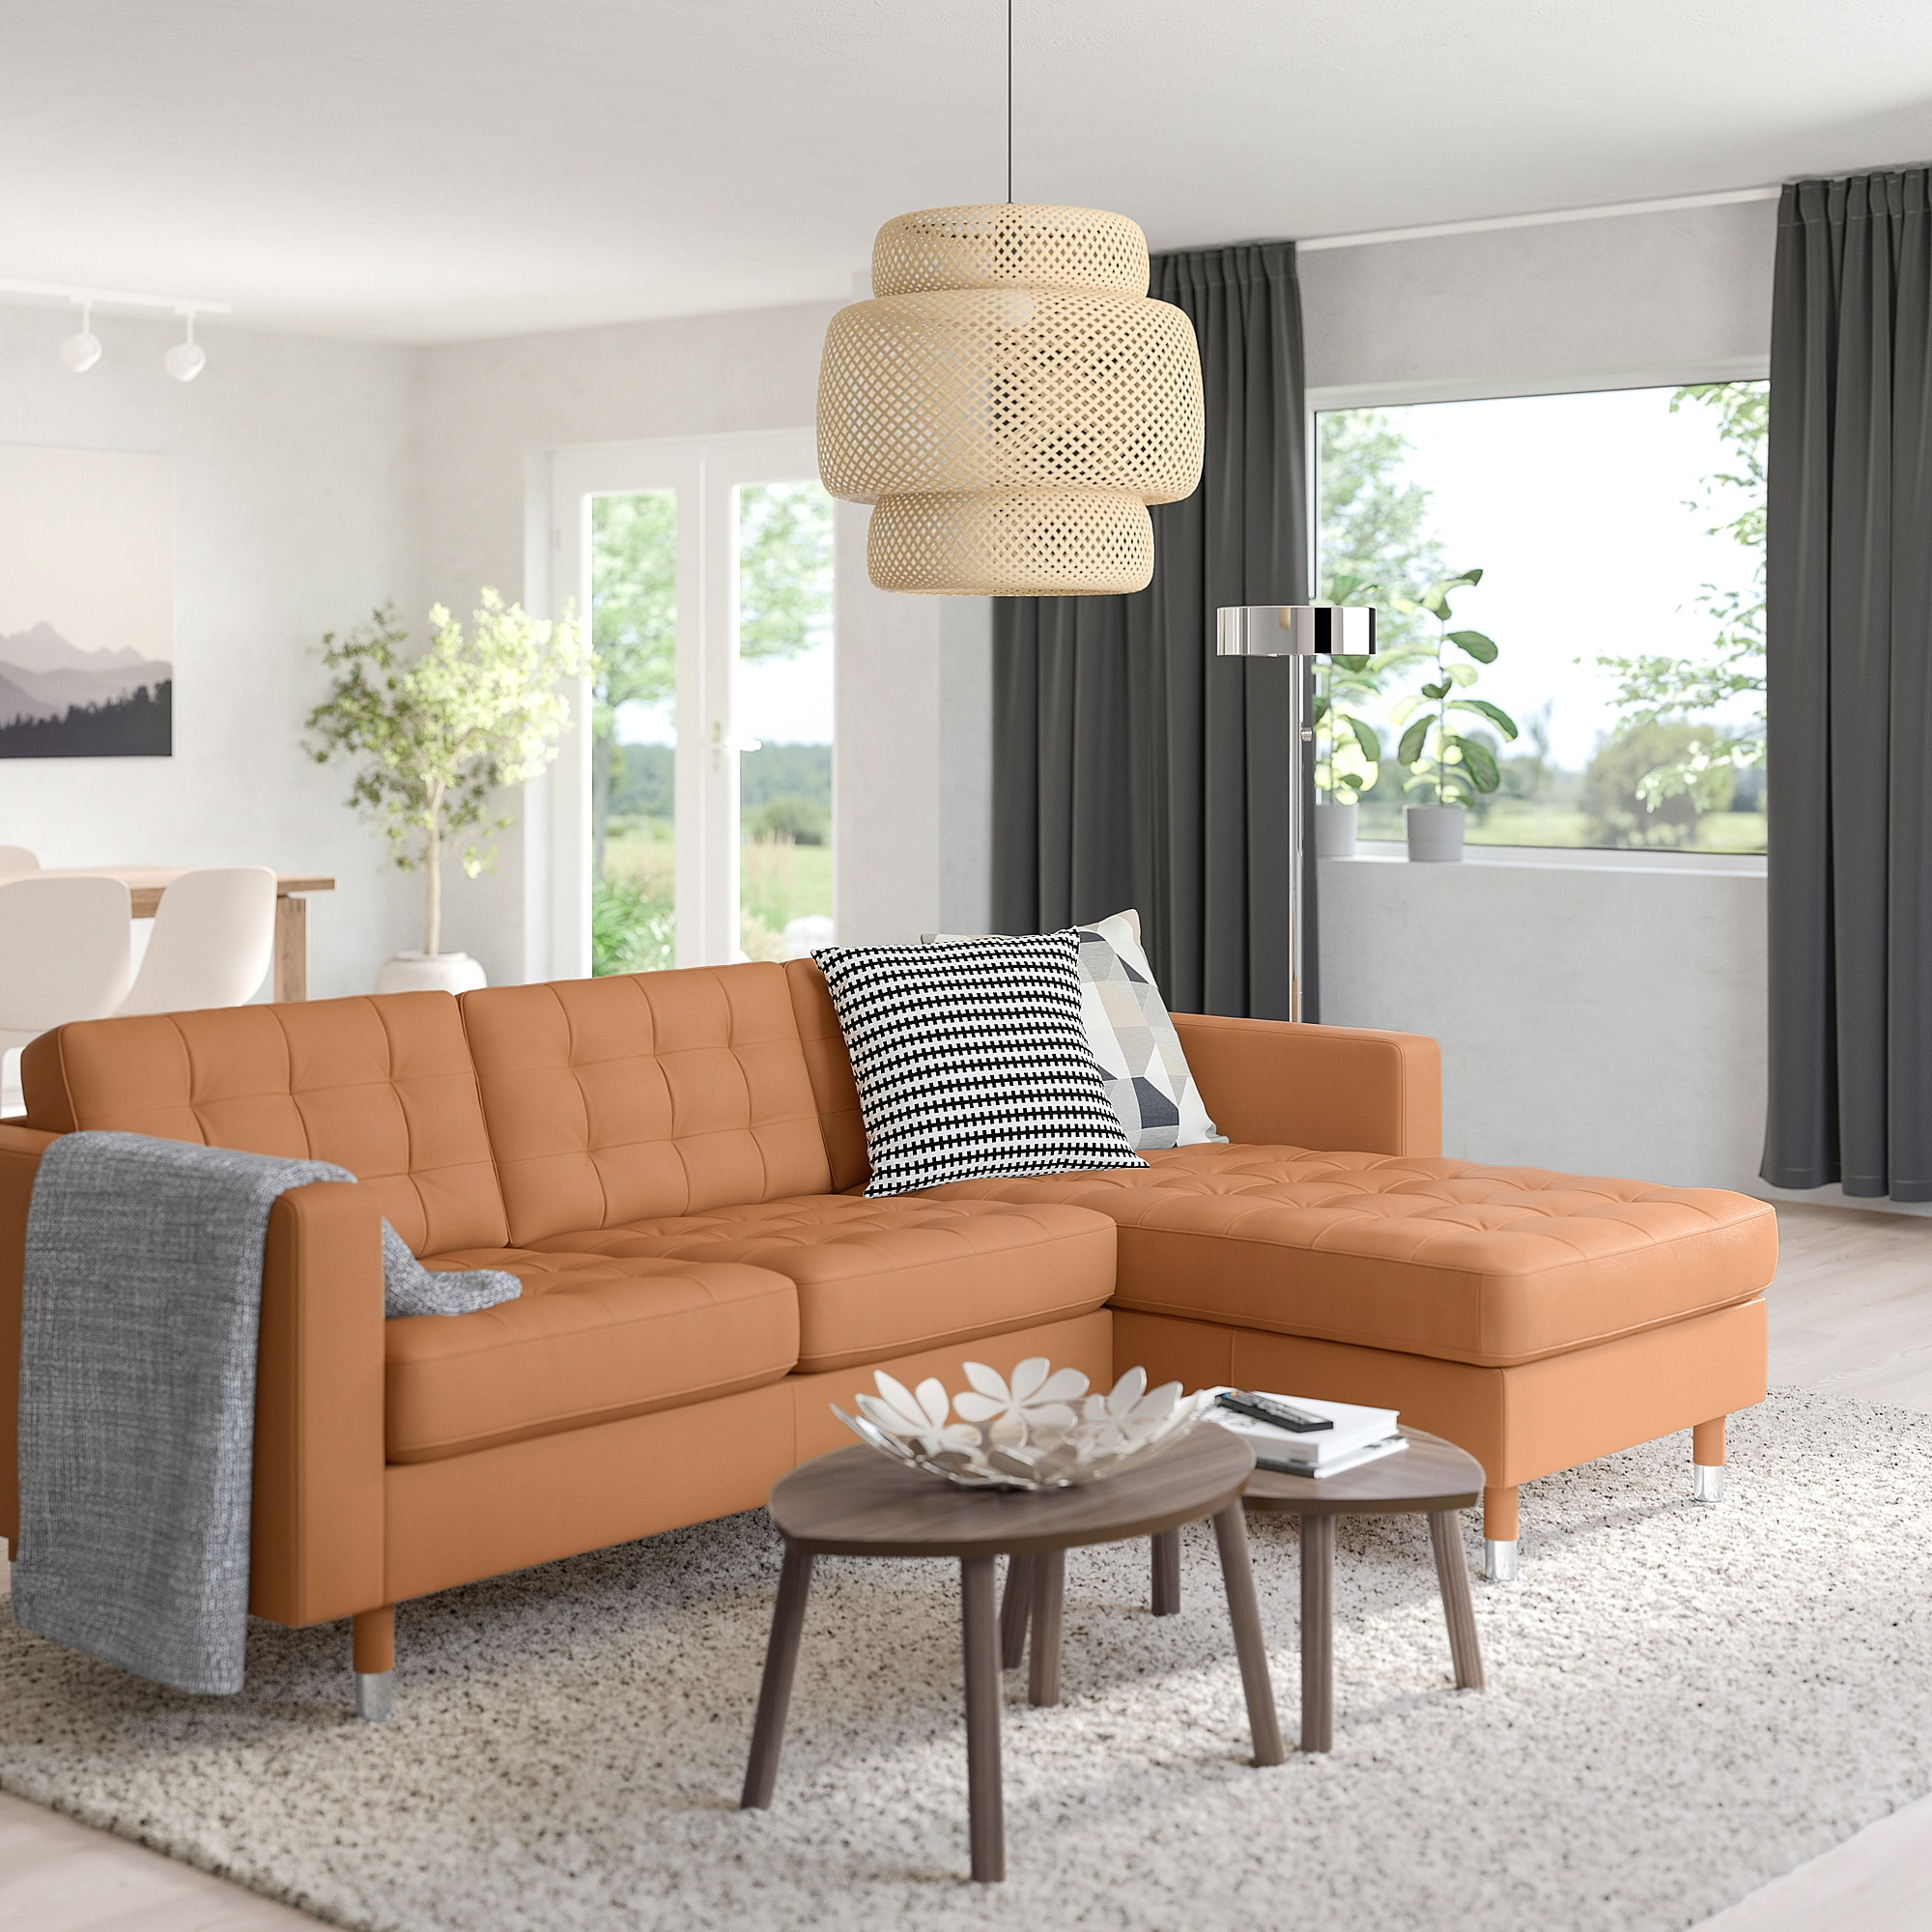 The IKEA Morabo in golden brown leather